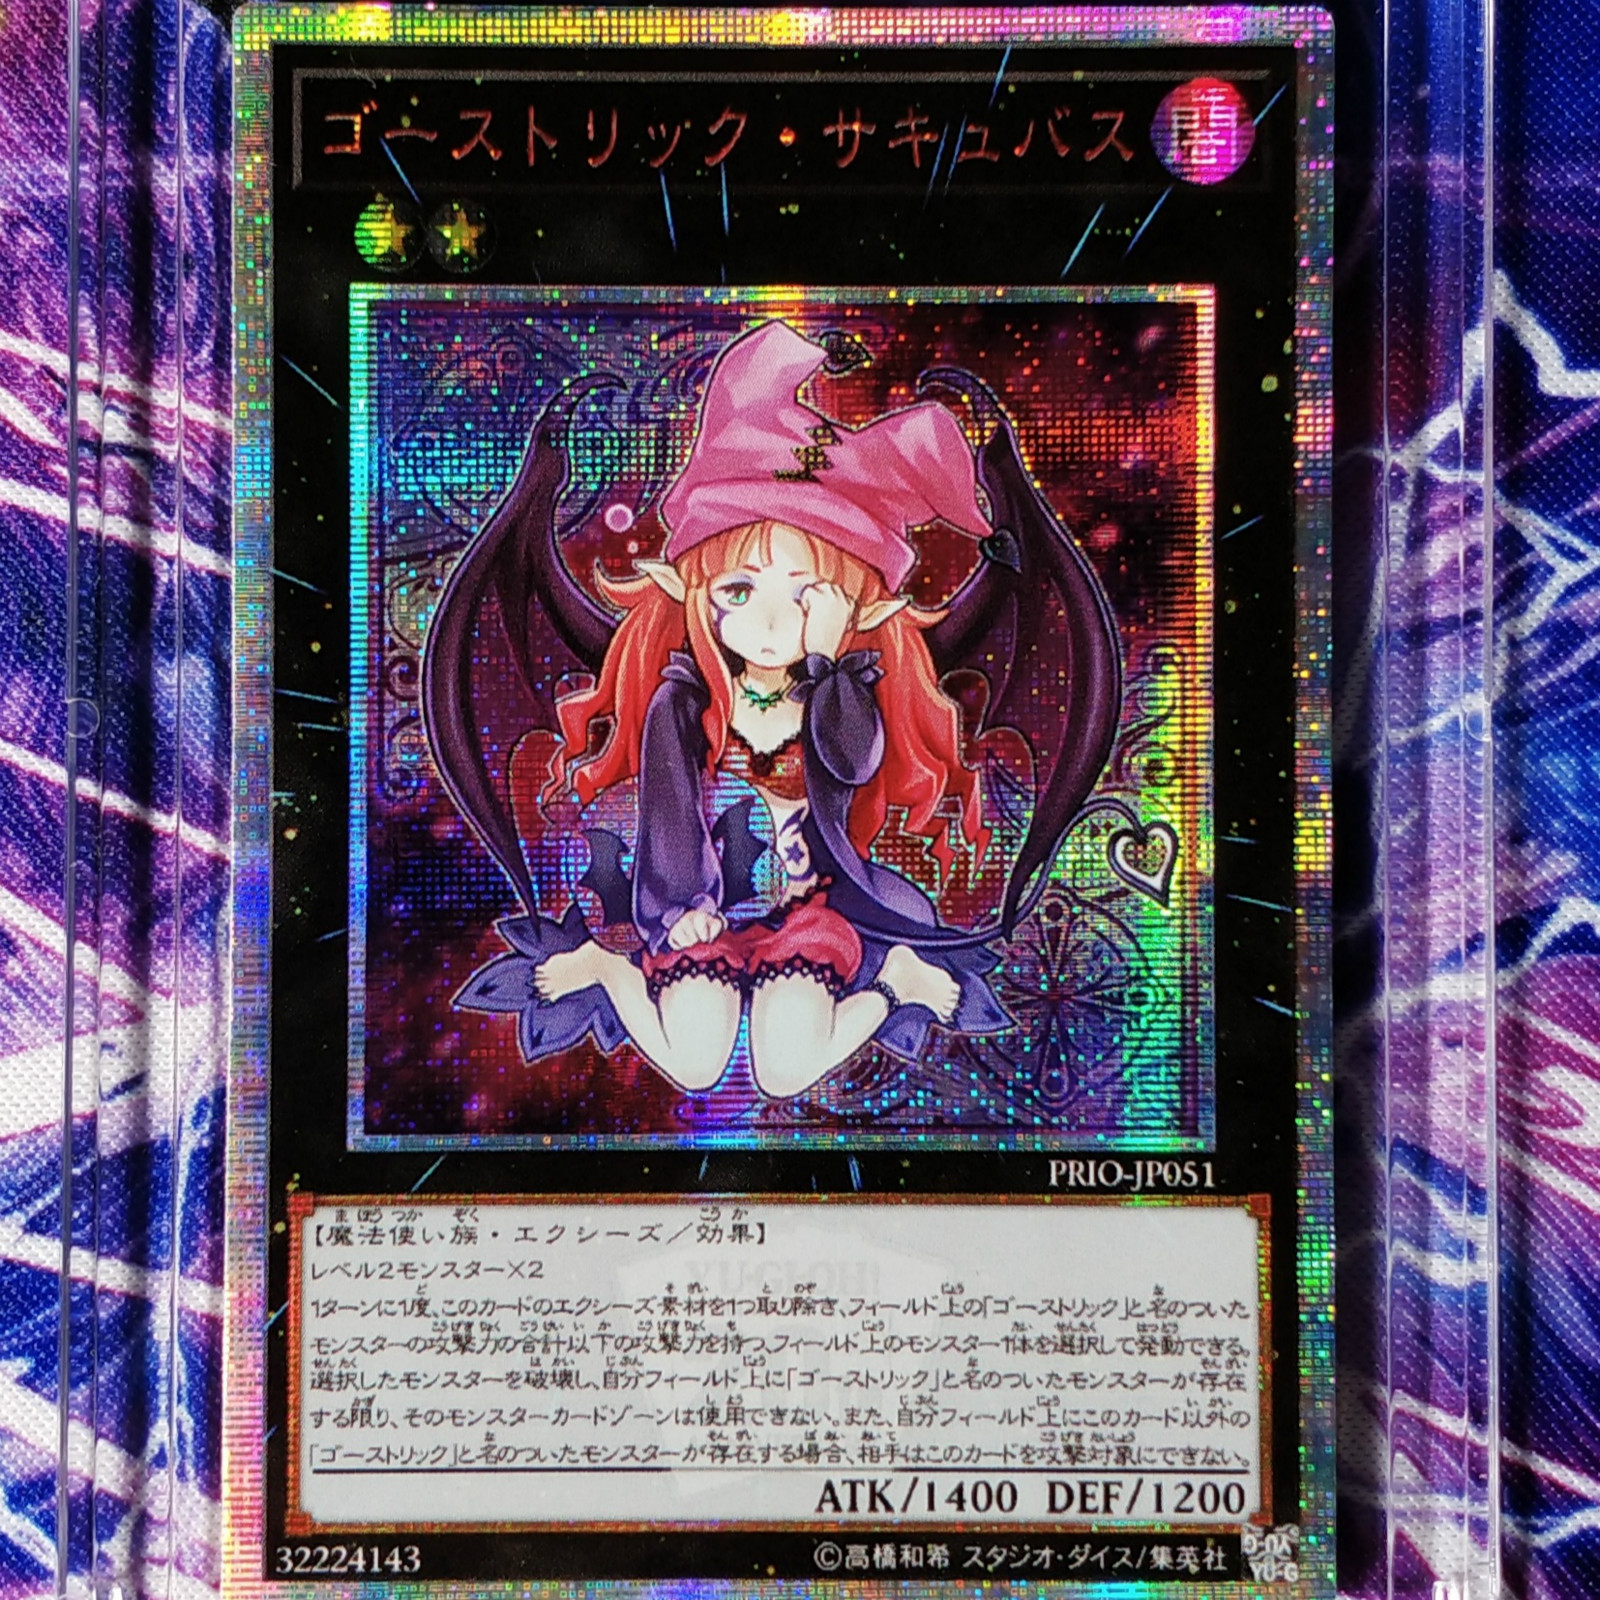 Yu Gi Oh Ghostrick Succubus DIY Colorful Toys Hobbies Hobby Collectibles Game Collection Anime Cards